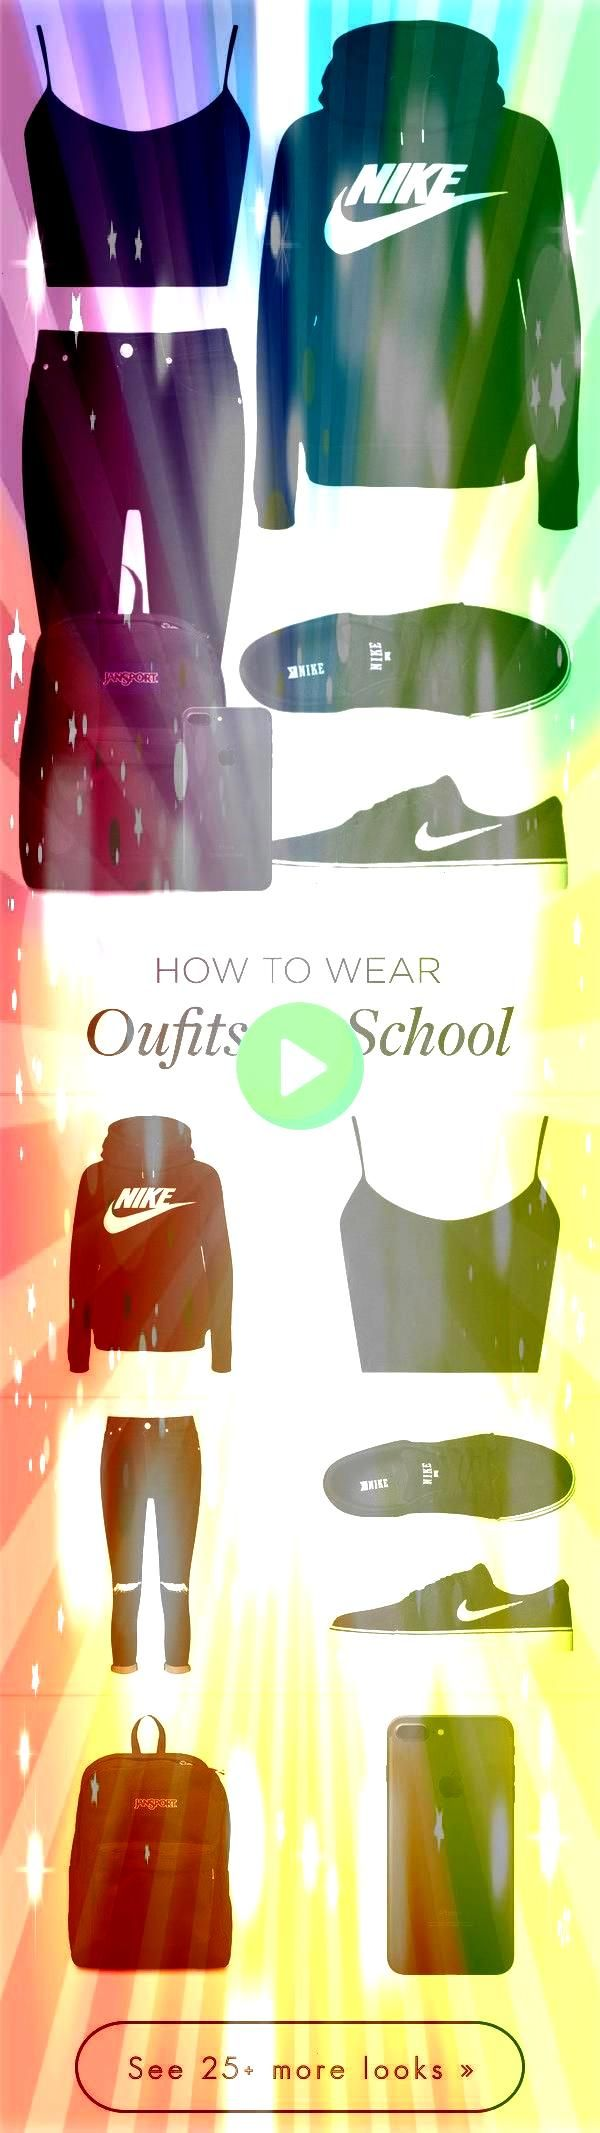 outfits for college you can totally copy 9 casual outfits for college you can totally copy9 casual outfits for college you can totally copy Ill be waitin for you by carol...